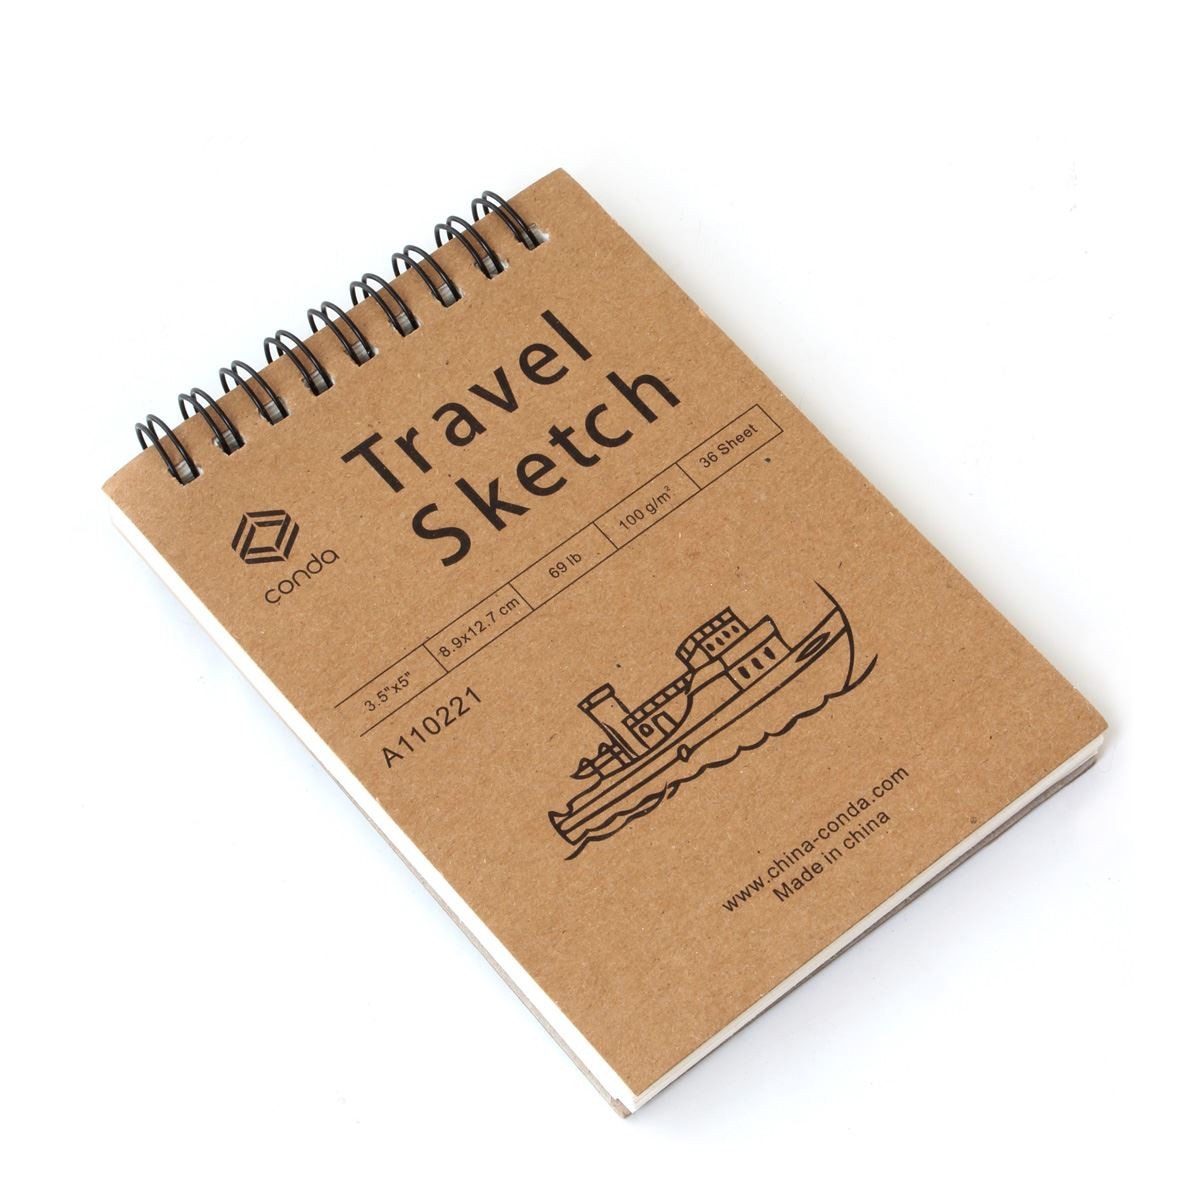 Travel spiral sketche pads 3.5x5 barco